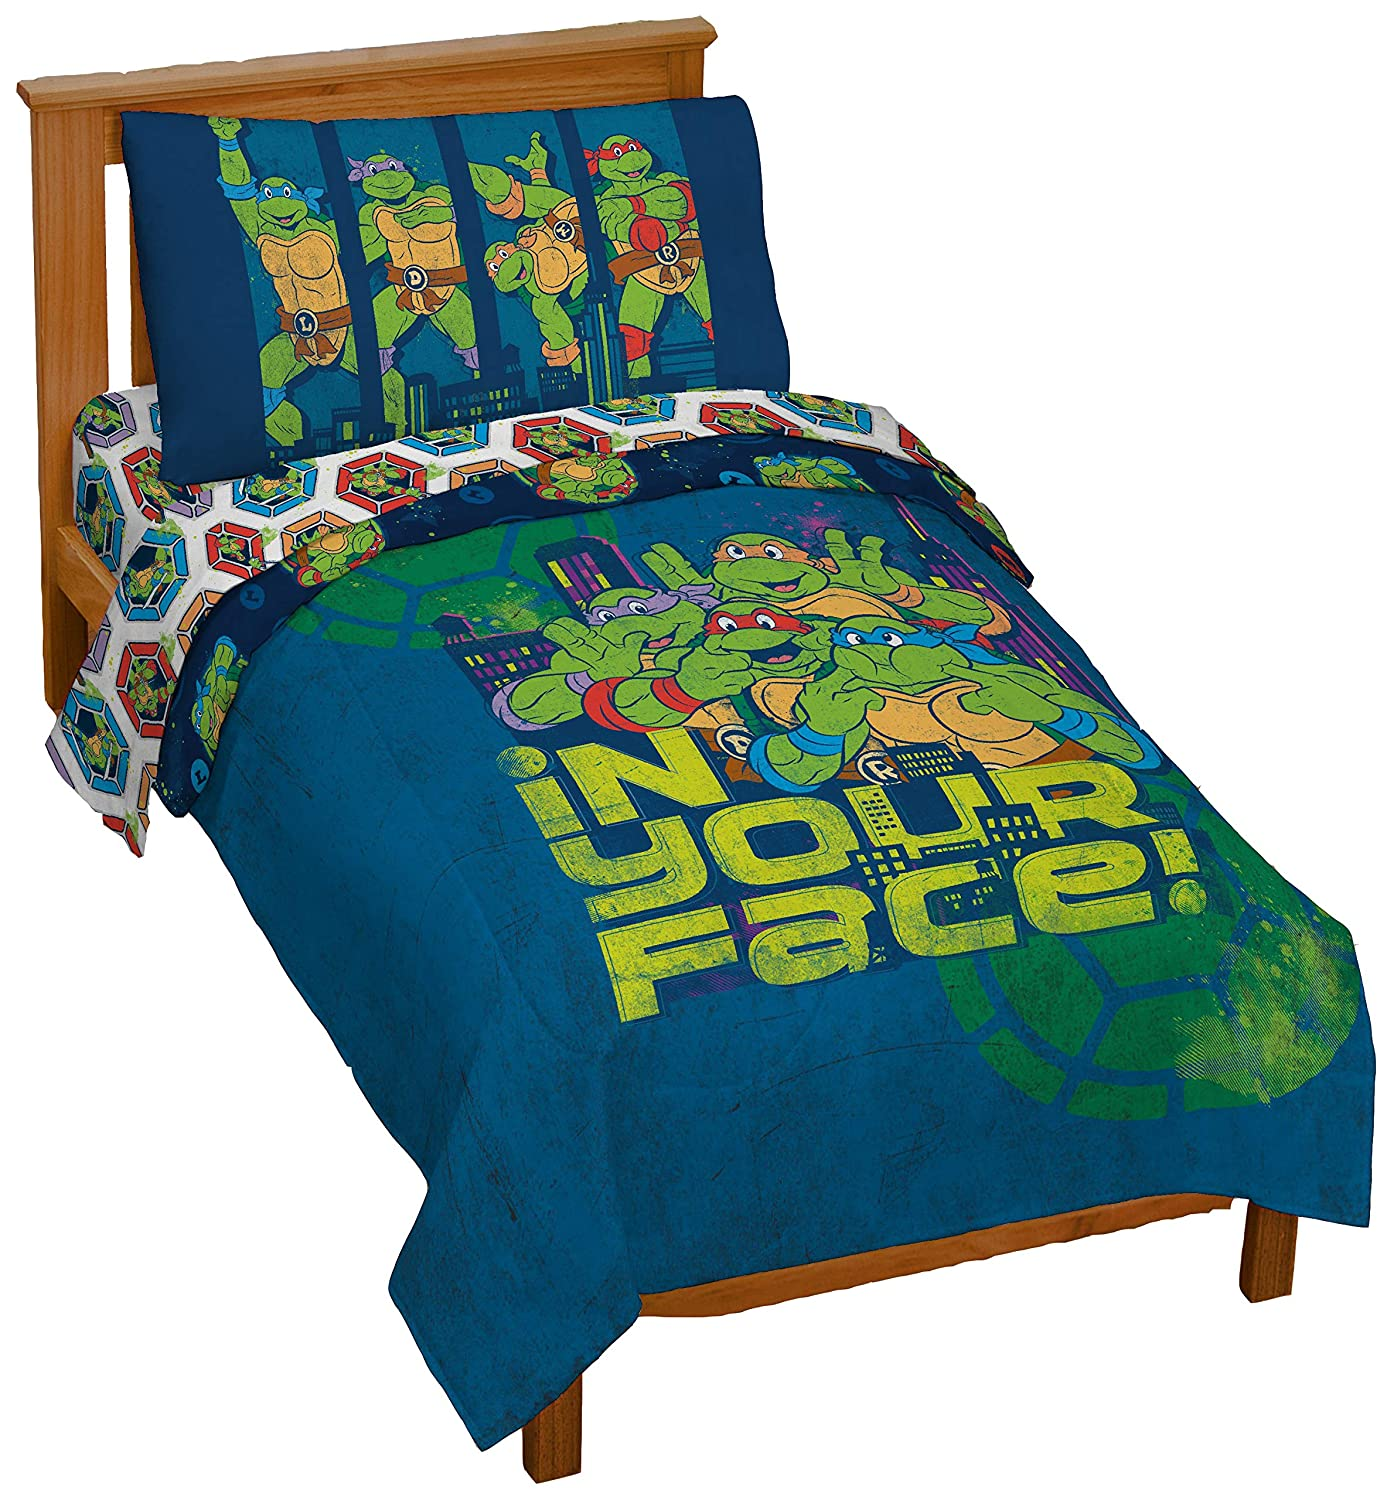 Jay Franco Nickelodeon Teenage Mutant Ninja Turtles in Your Face 4 Piece Toddler Bed Set – Super Soft Microfiber Bed Set Includes Toddler Size Comforter & Sheet Set (Official Nickelodeon Product)